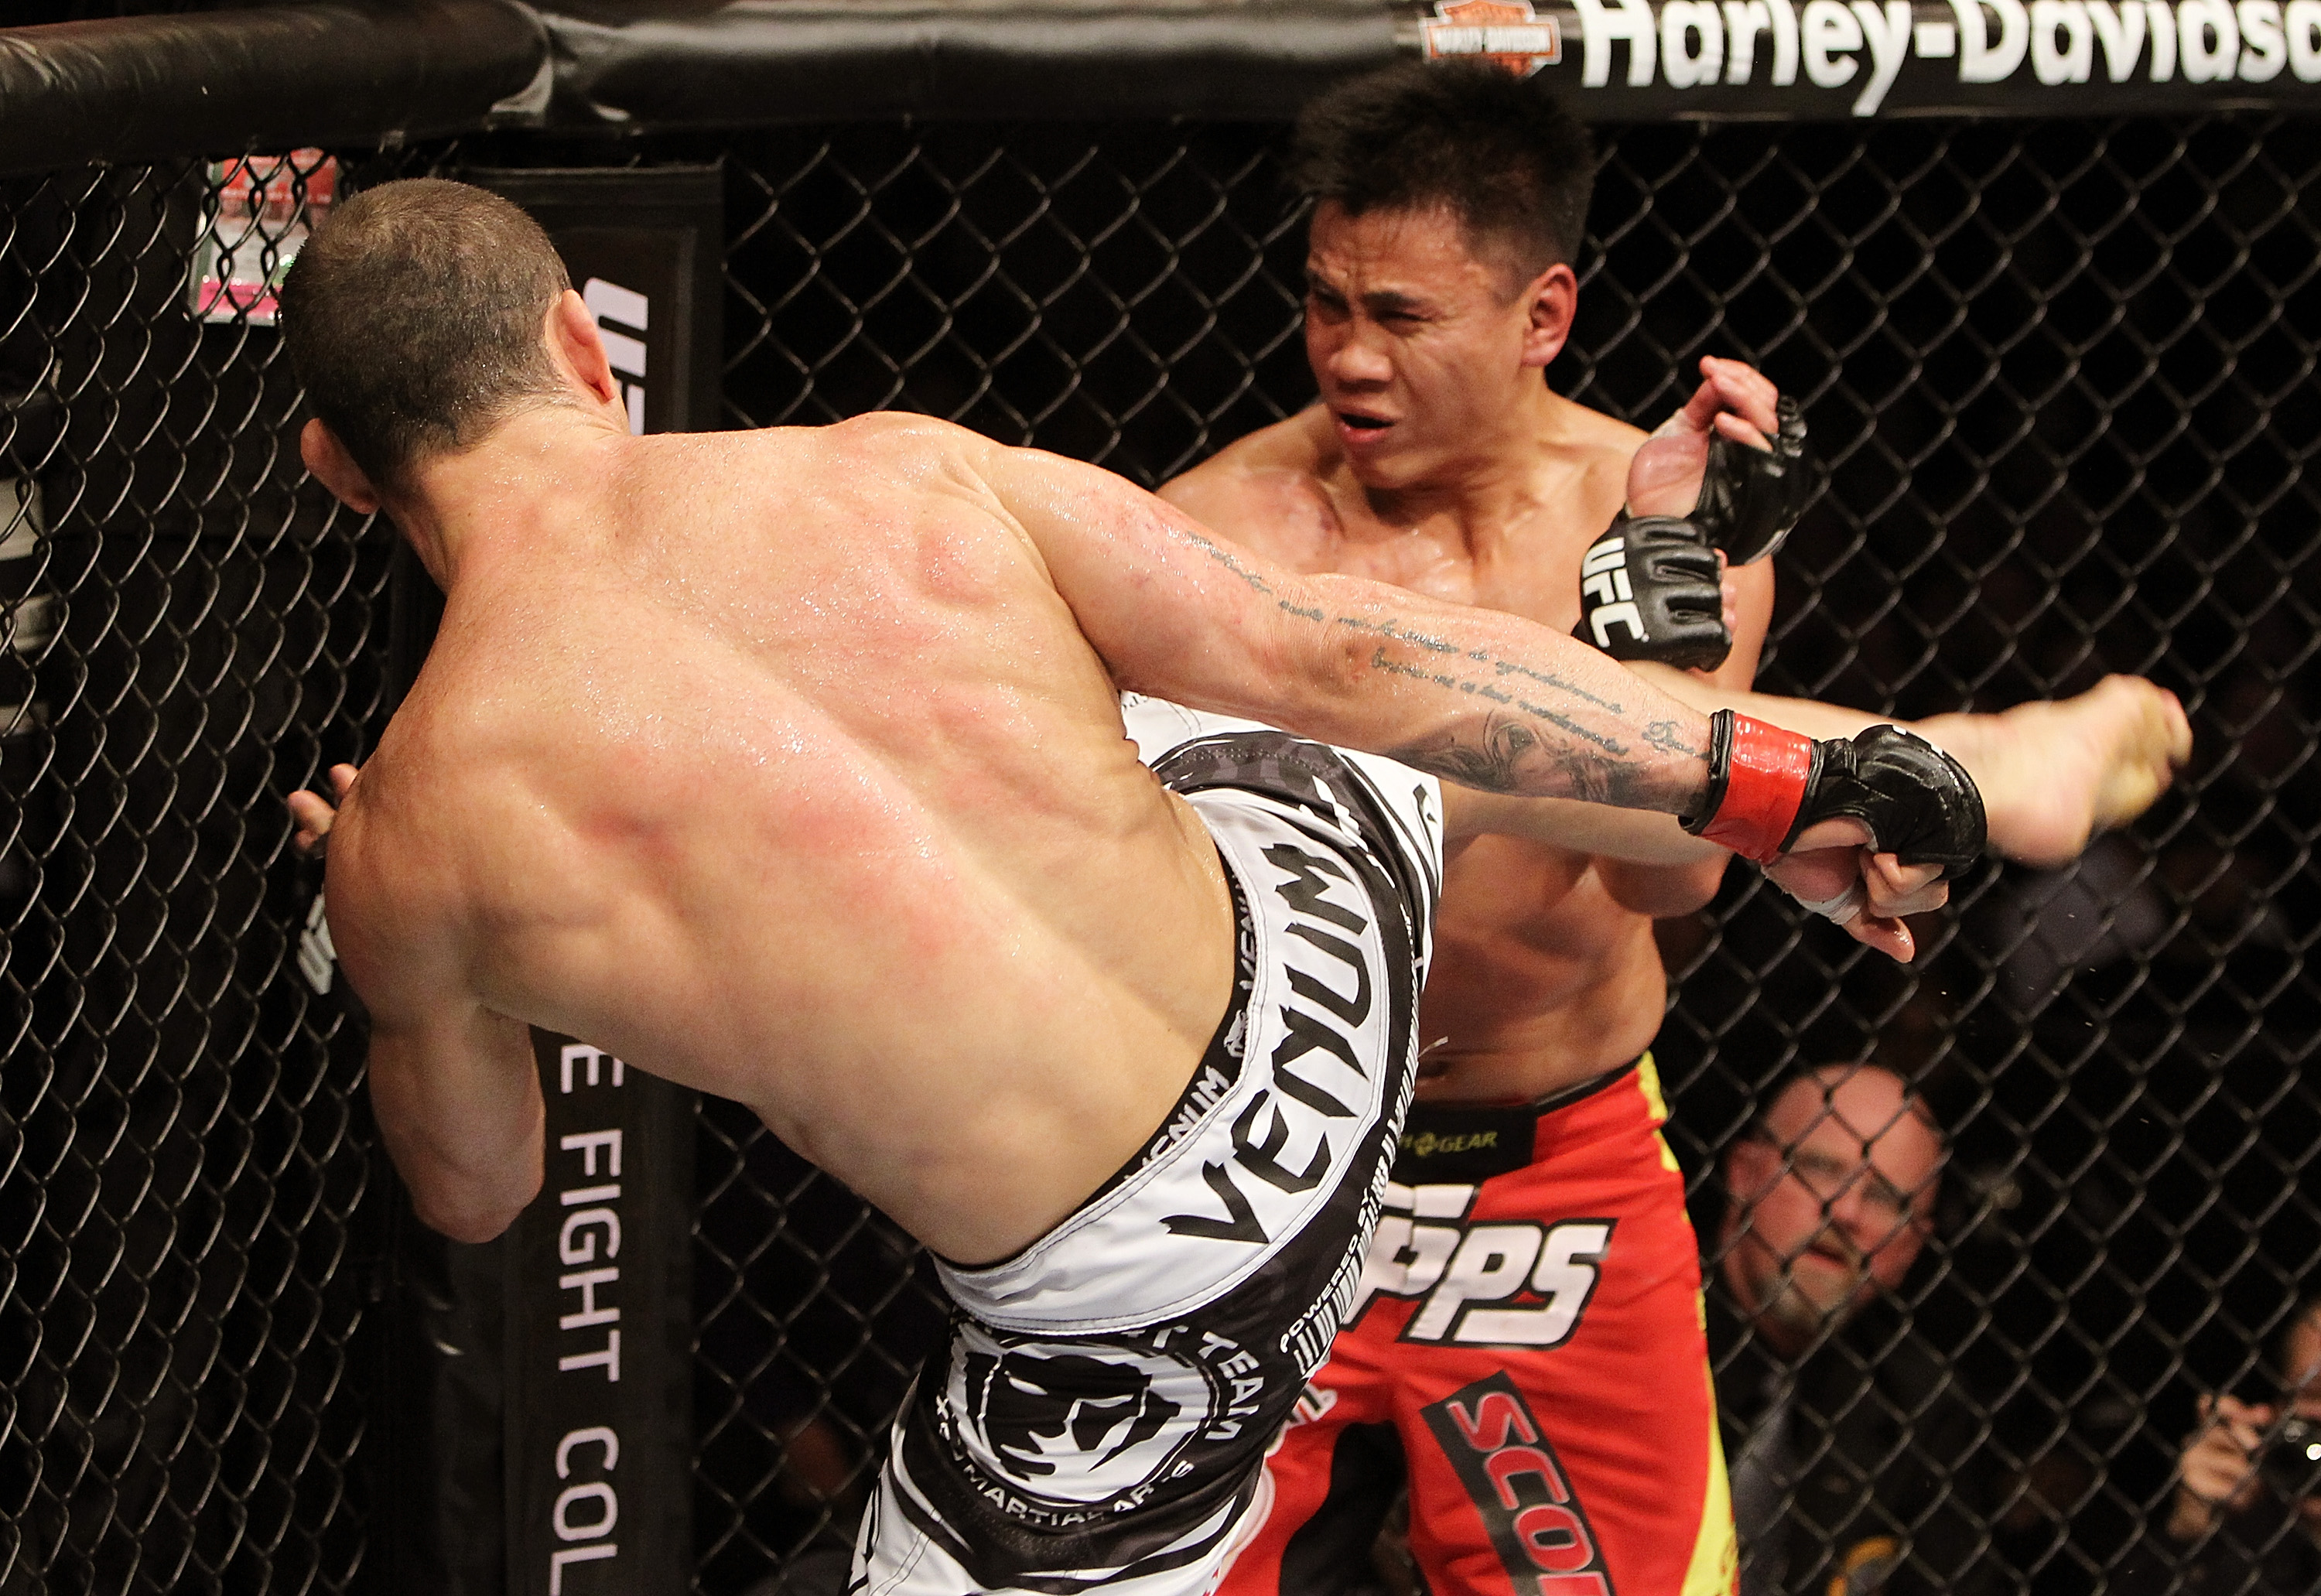 SAN JOSE, CA - NOVEMBER 19: (L-R) Wanderlei Silva kicks Cung Le during an UFC Middleweight bout at the HP Pavillion on November 19, 2011 in San Jose, California.  (Photo by Josh Hedges/Zuffa LLC/Zuffa LLC via Getty Images)